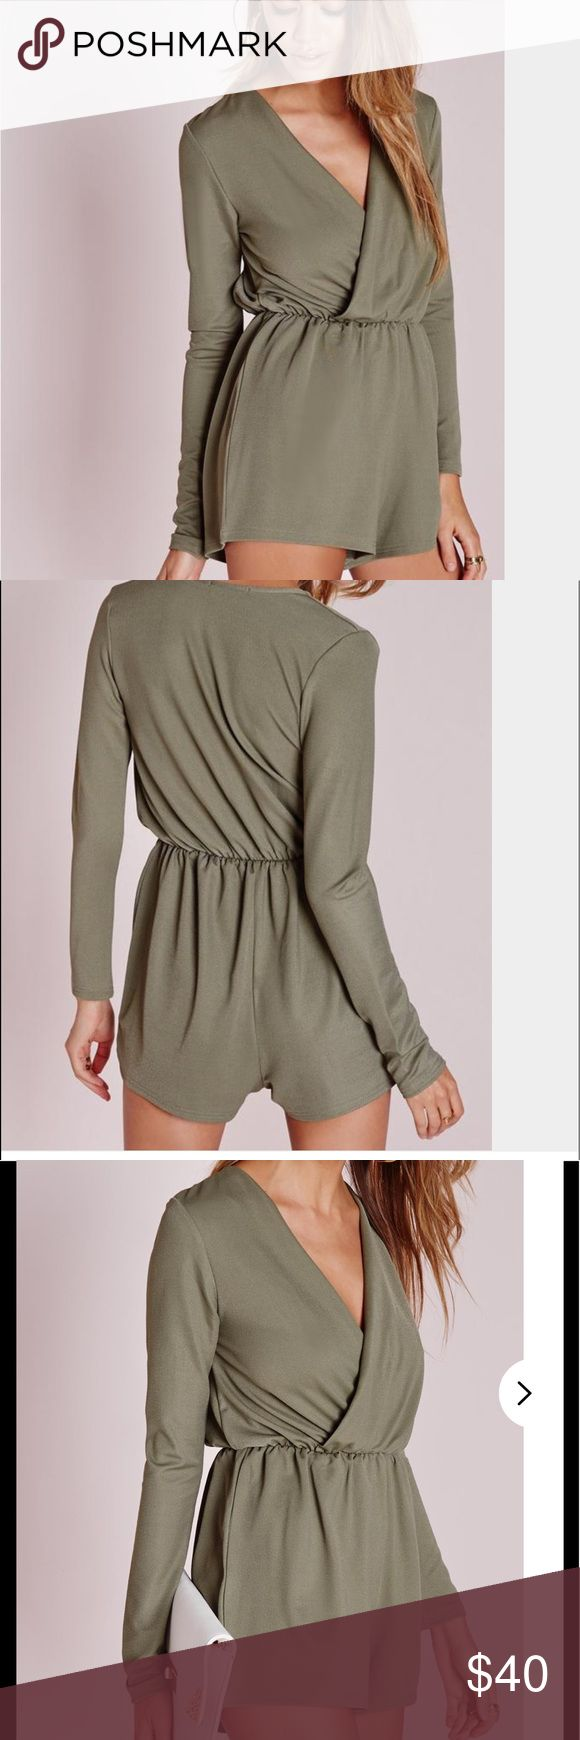 NWT Missguided Playsuit romper, khaki. Size 8. get a party essential with this khaki wrap front romper with long sleeves!   95% polyester 5% elastane Missguided Tops